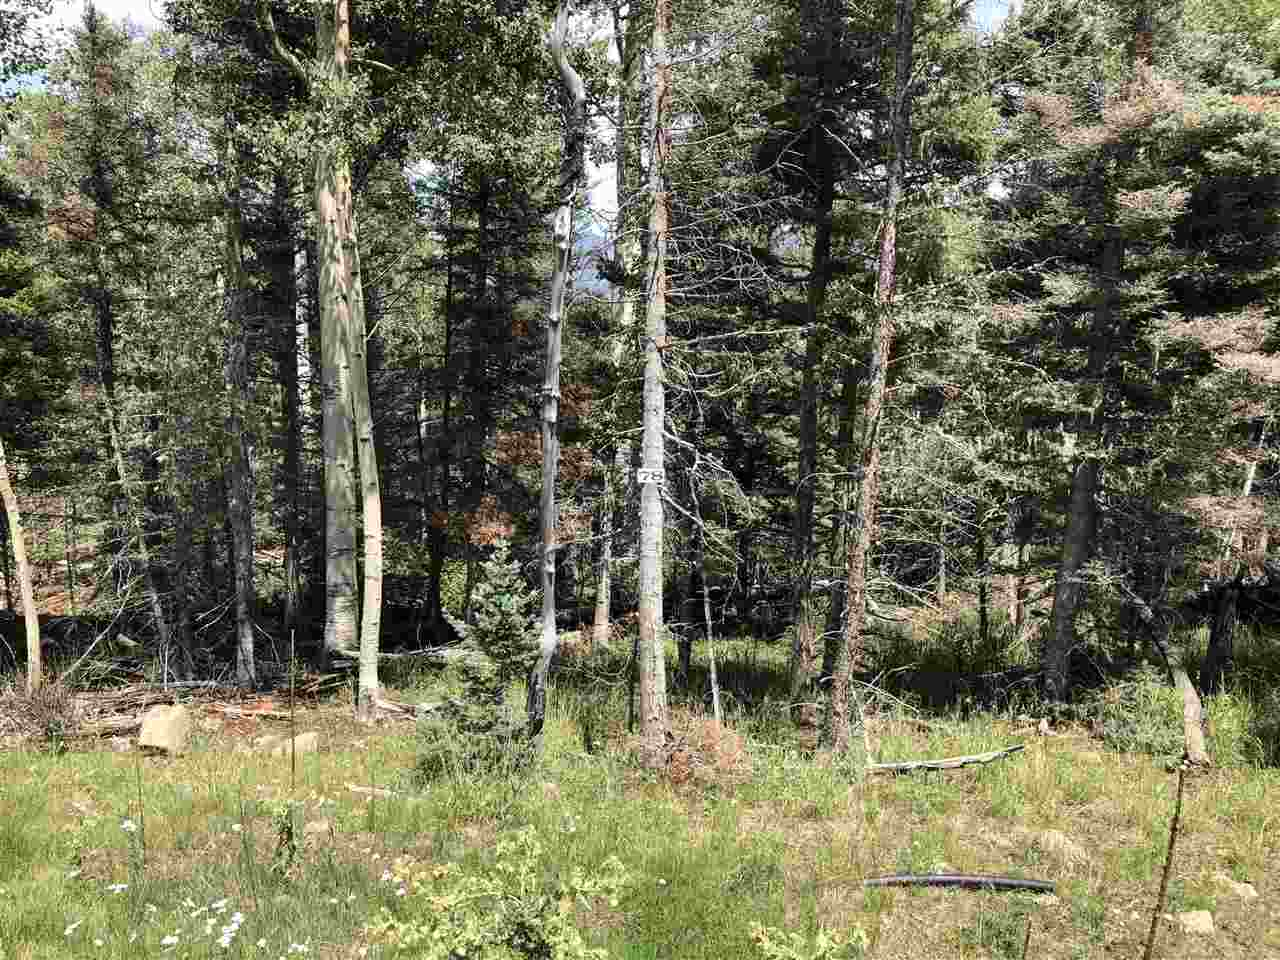 A beautiful 5.07 acre piece of land that overlooks the western side of the hill towards the ski area. Once this lot is thinned, build your dream home with magical views. Close to the national forest and hardly any neighbors!